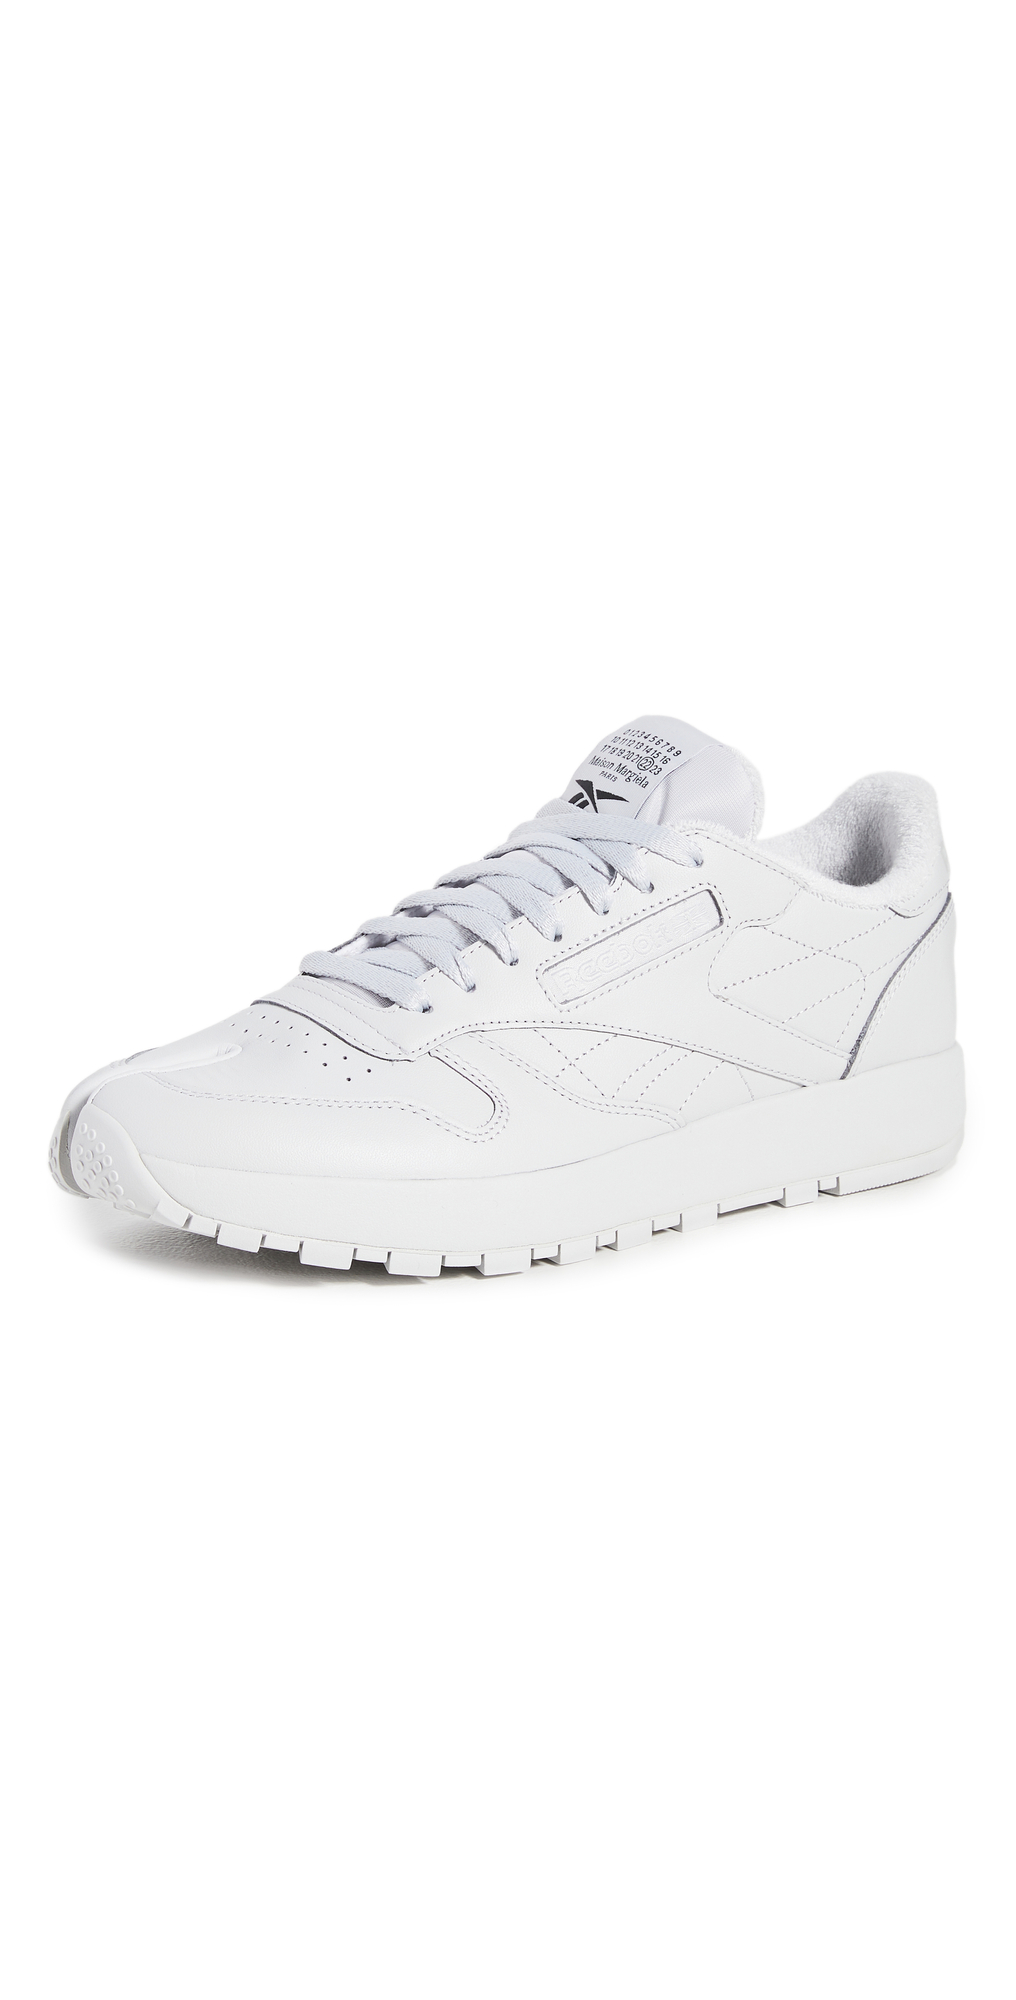 Project 0 Cl Classic Leather Tabi Sneakers